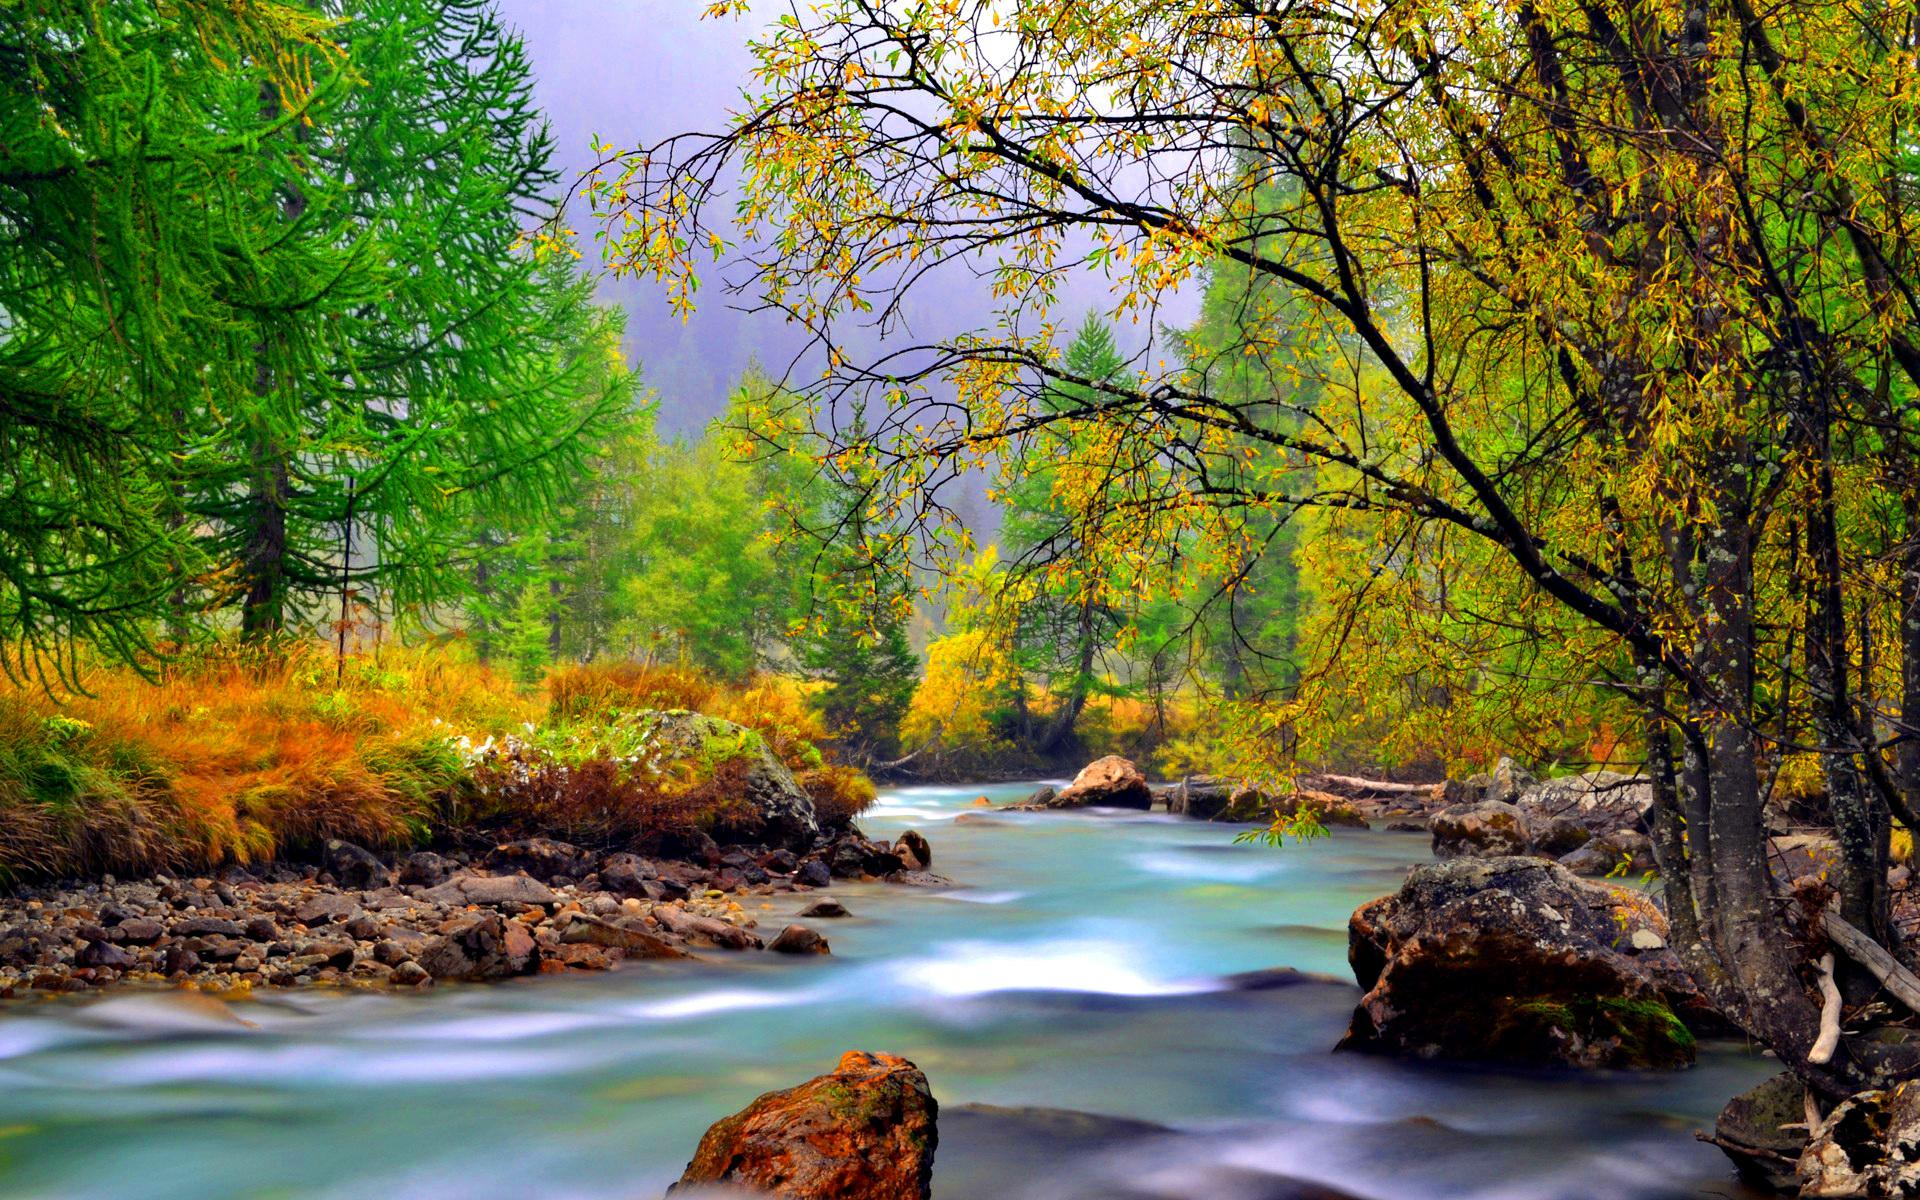 Animated Hd Wallpapers 1080p Free Download Mountain River With Rocks Rocks Yellowed Grass Evergreen